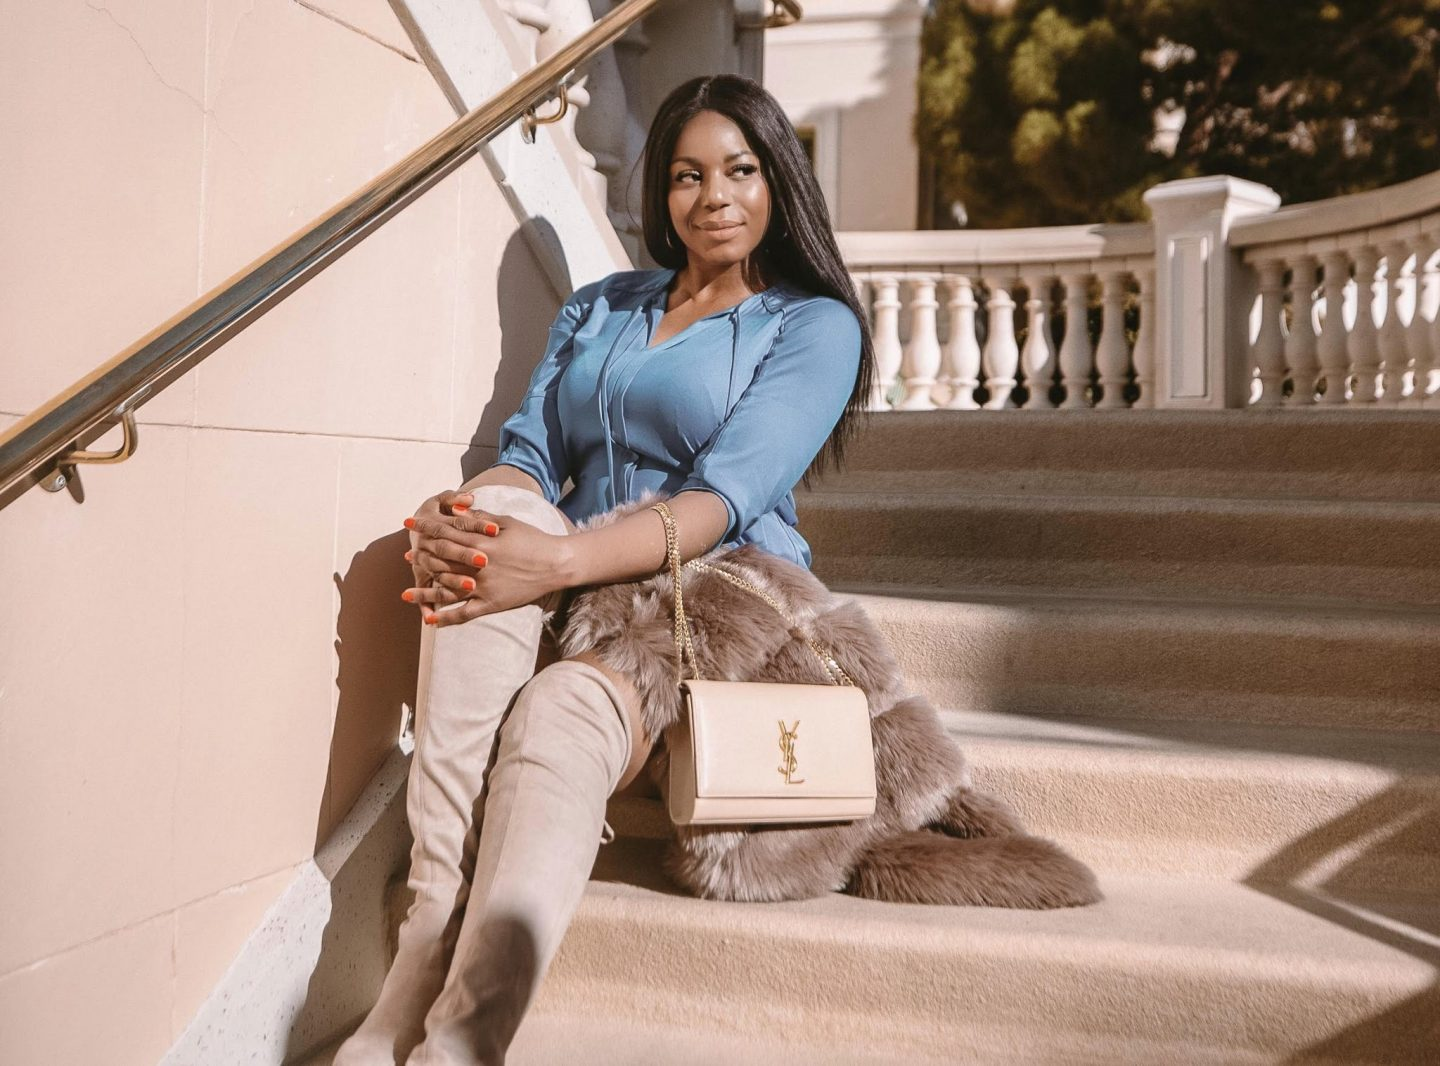 Fashion Blogger Kaye Bassey wearing a Blue DVF Dress & Saint Laurent Logo Bag in Las Vegas